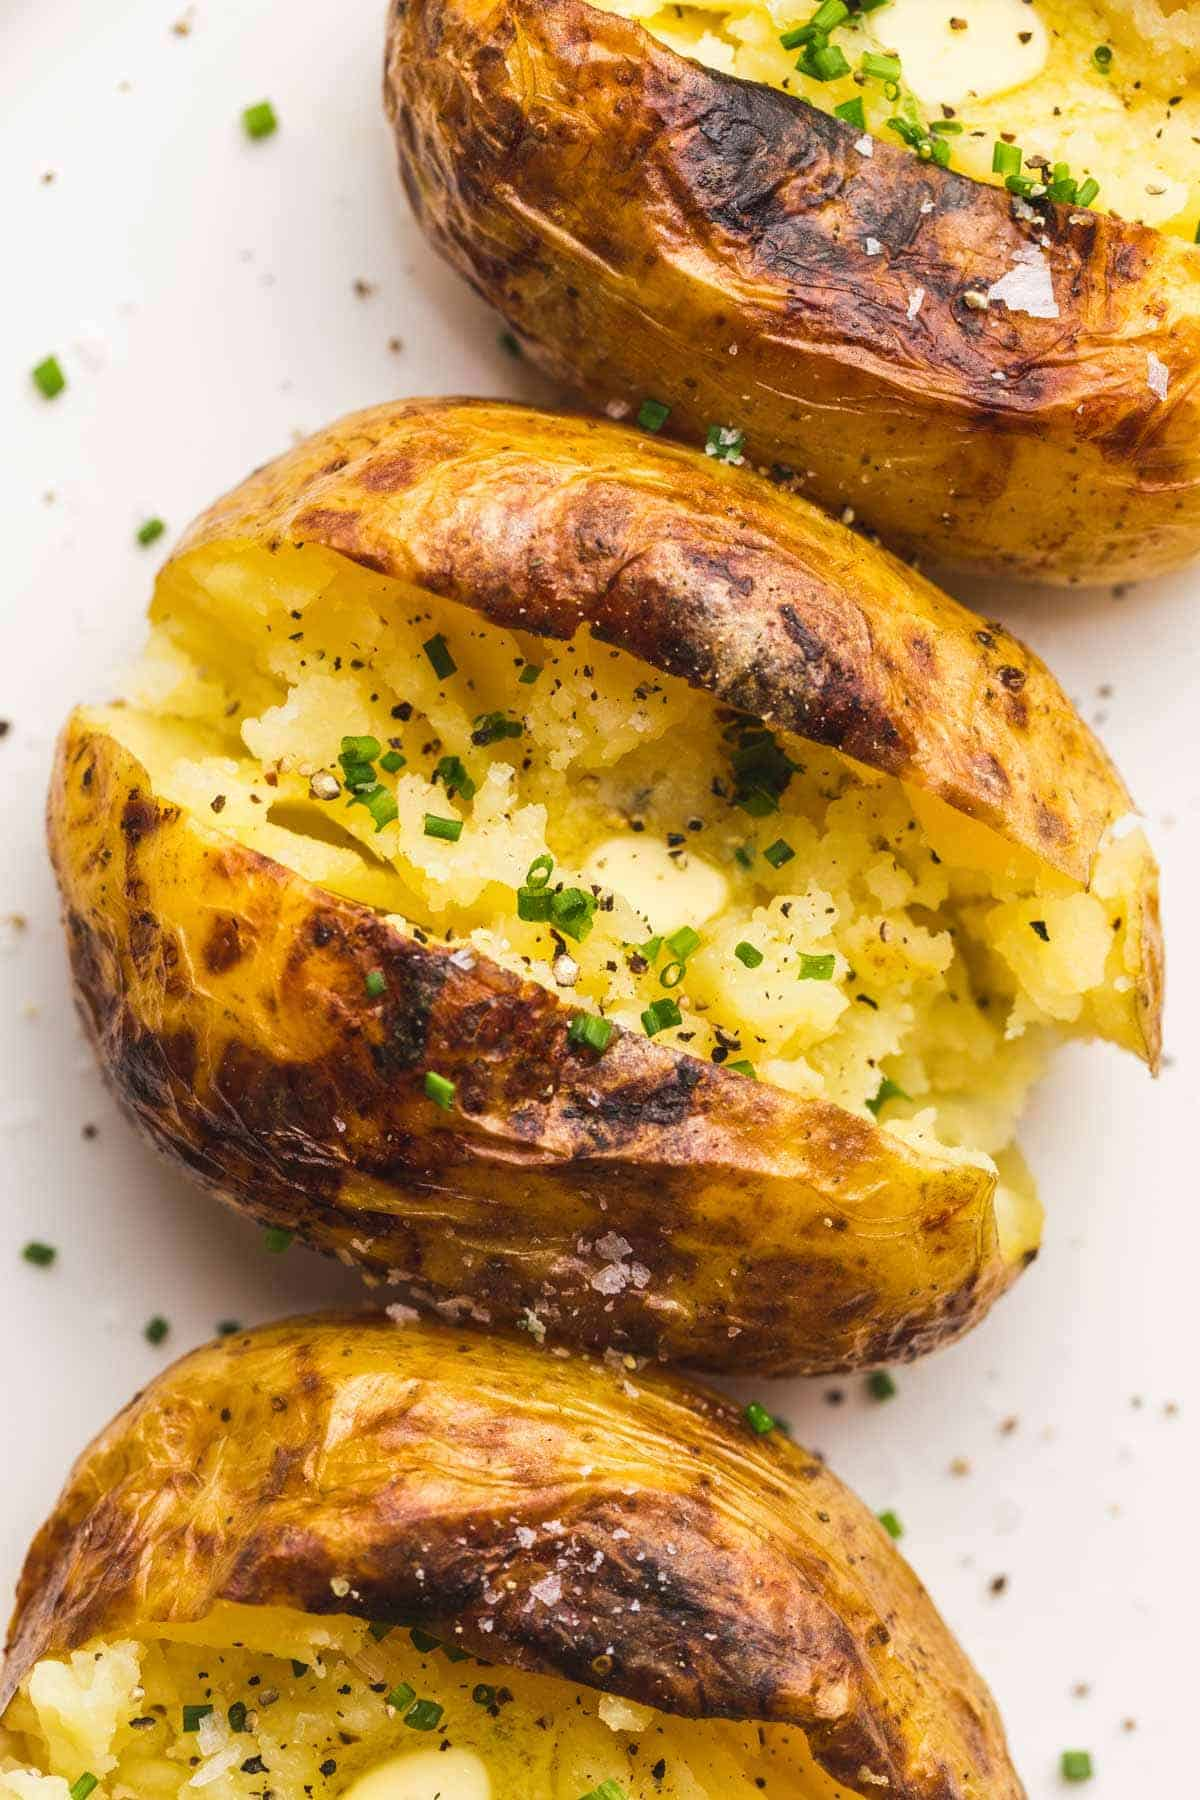 3 Baked Potatoes with butter, chopped chives, and sea salt flakes